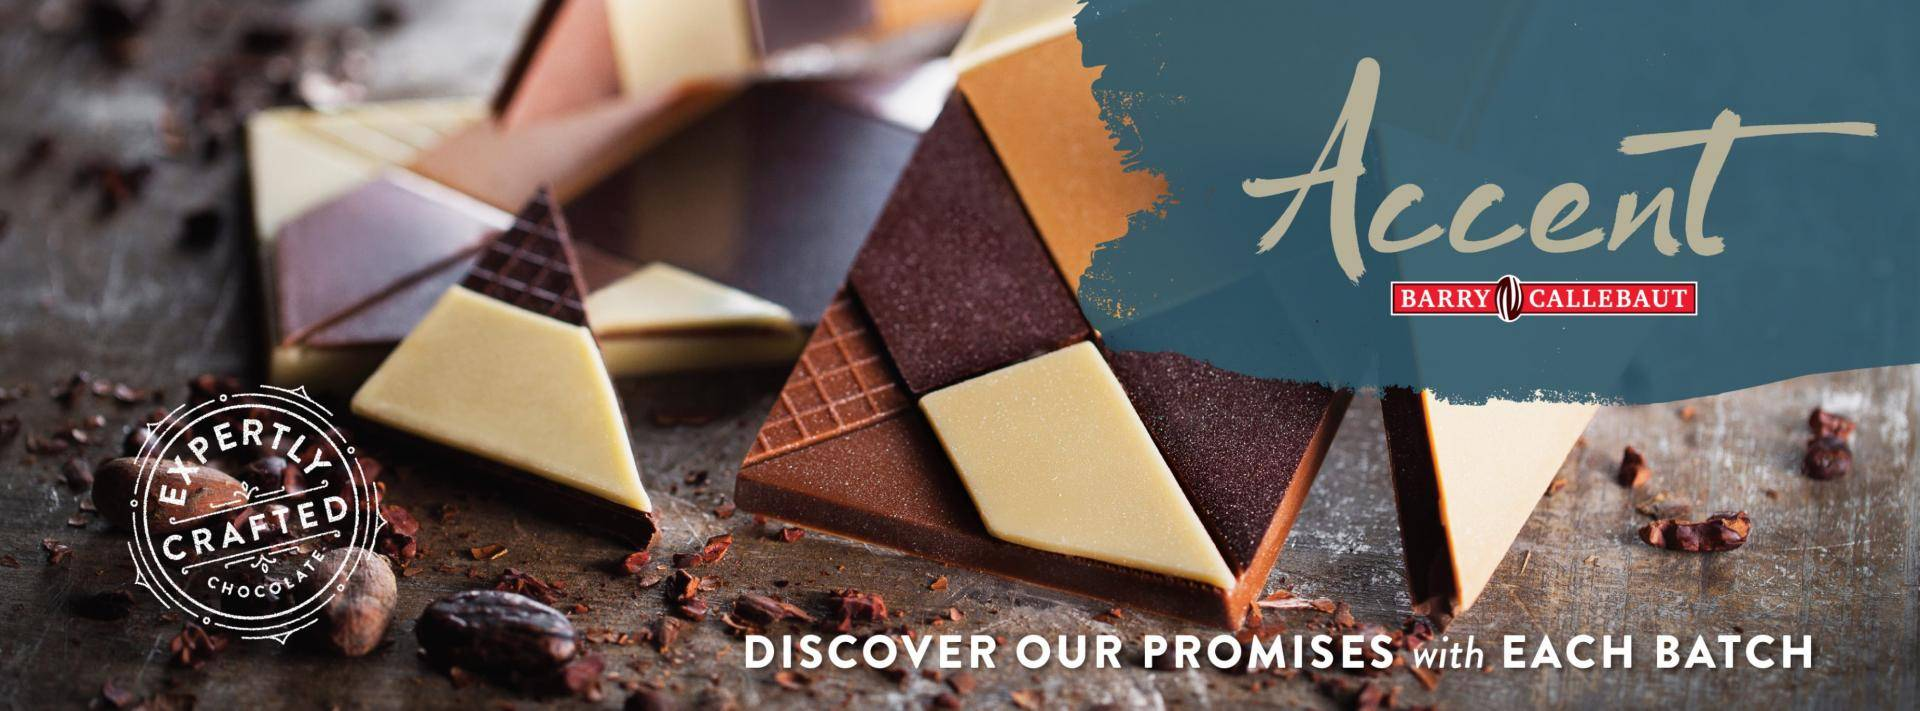 accent - a new line of chocolate